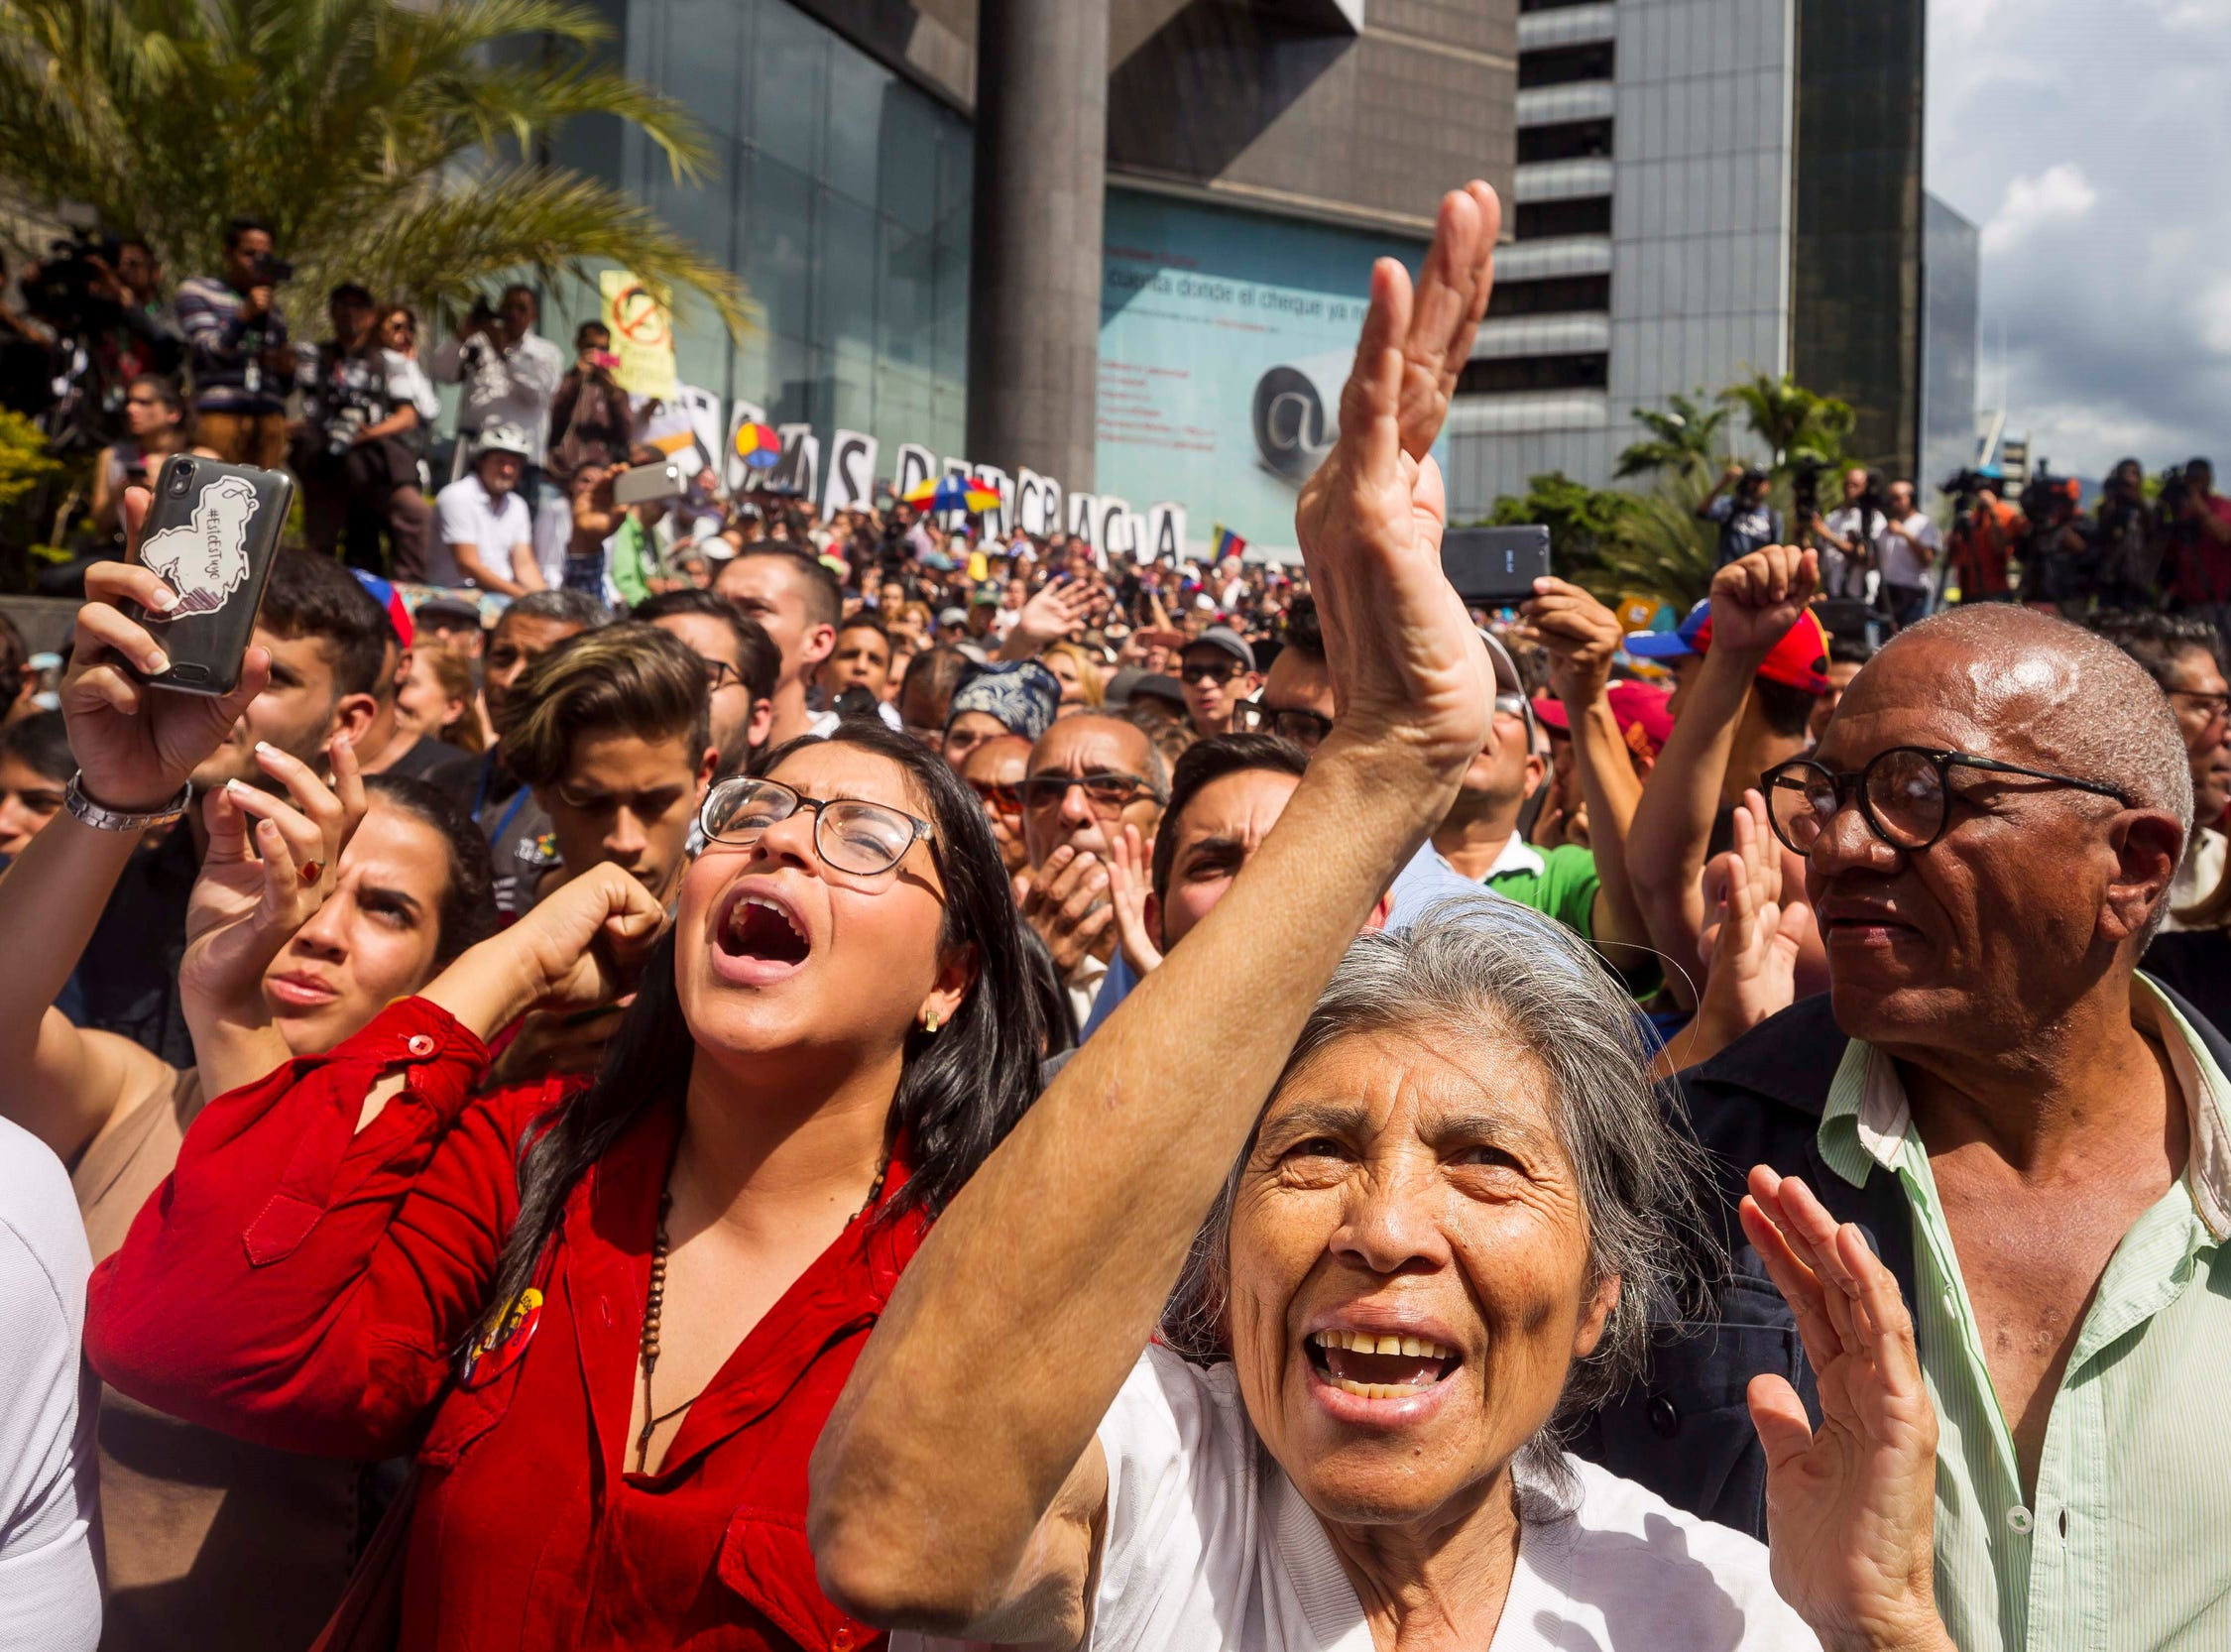 Hundreds protest against Nicolas Maduro's government, in Caracas, Venezuela, on Jan. 11, 2019. Venezuela has been facing an economic and social crisis where the inflation is rampant and the shortages of basic items have lead millions of people into poverty.